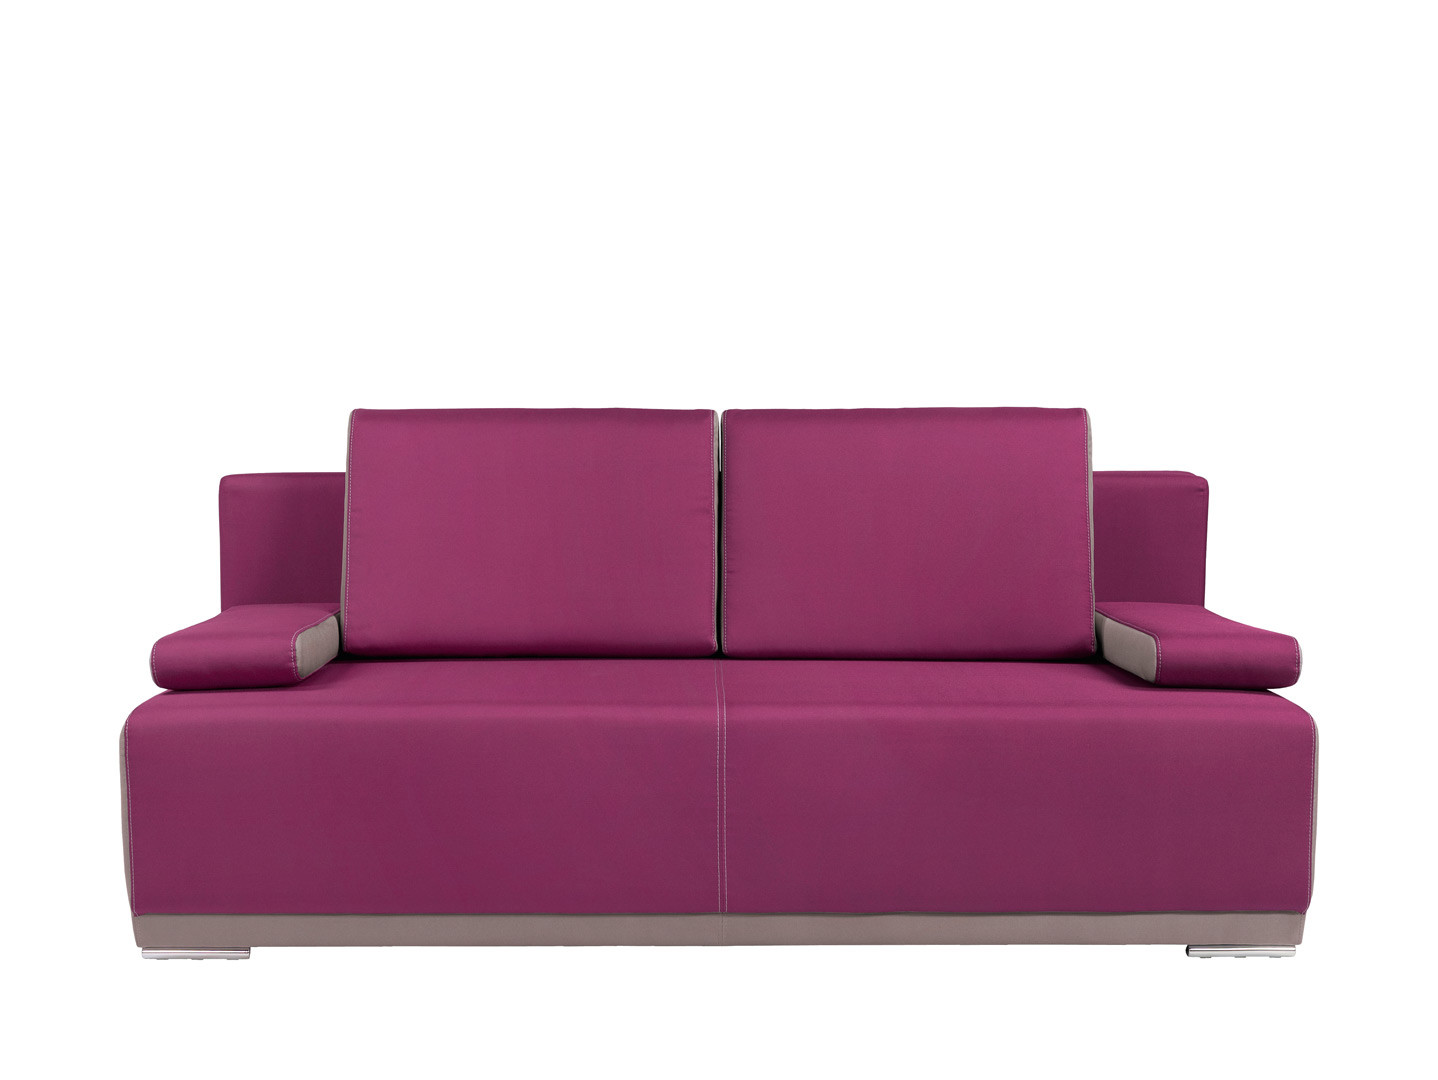 Garry meble metro for Sofa tuli 09